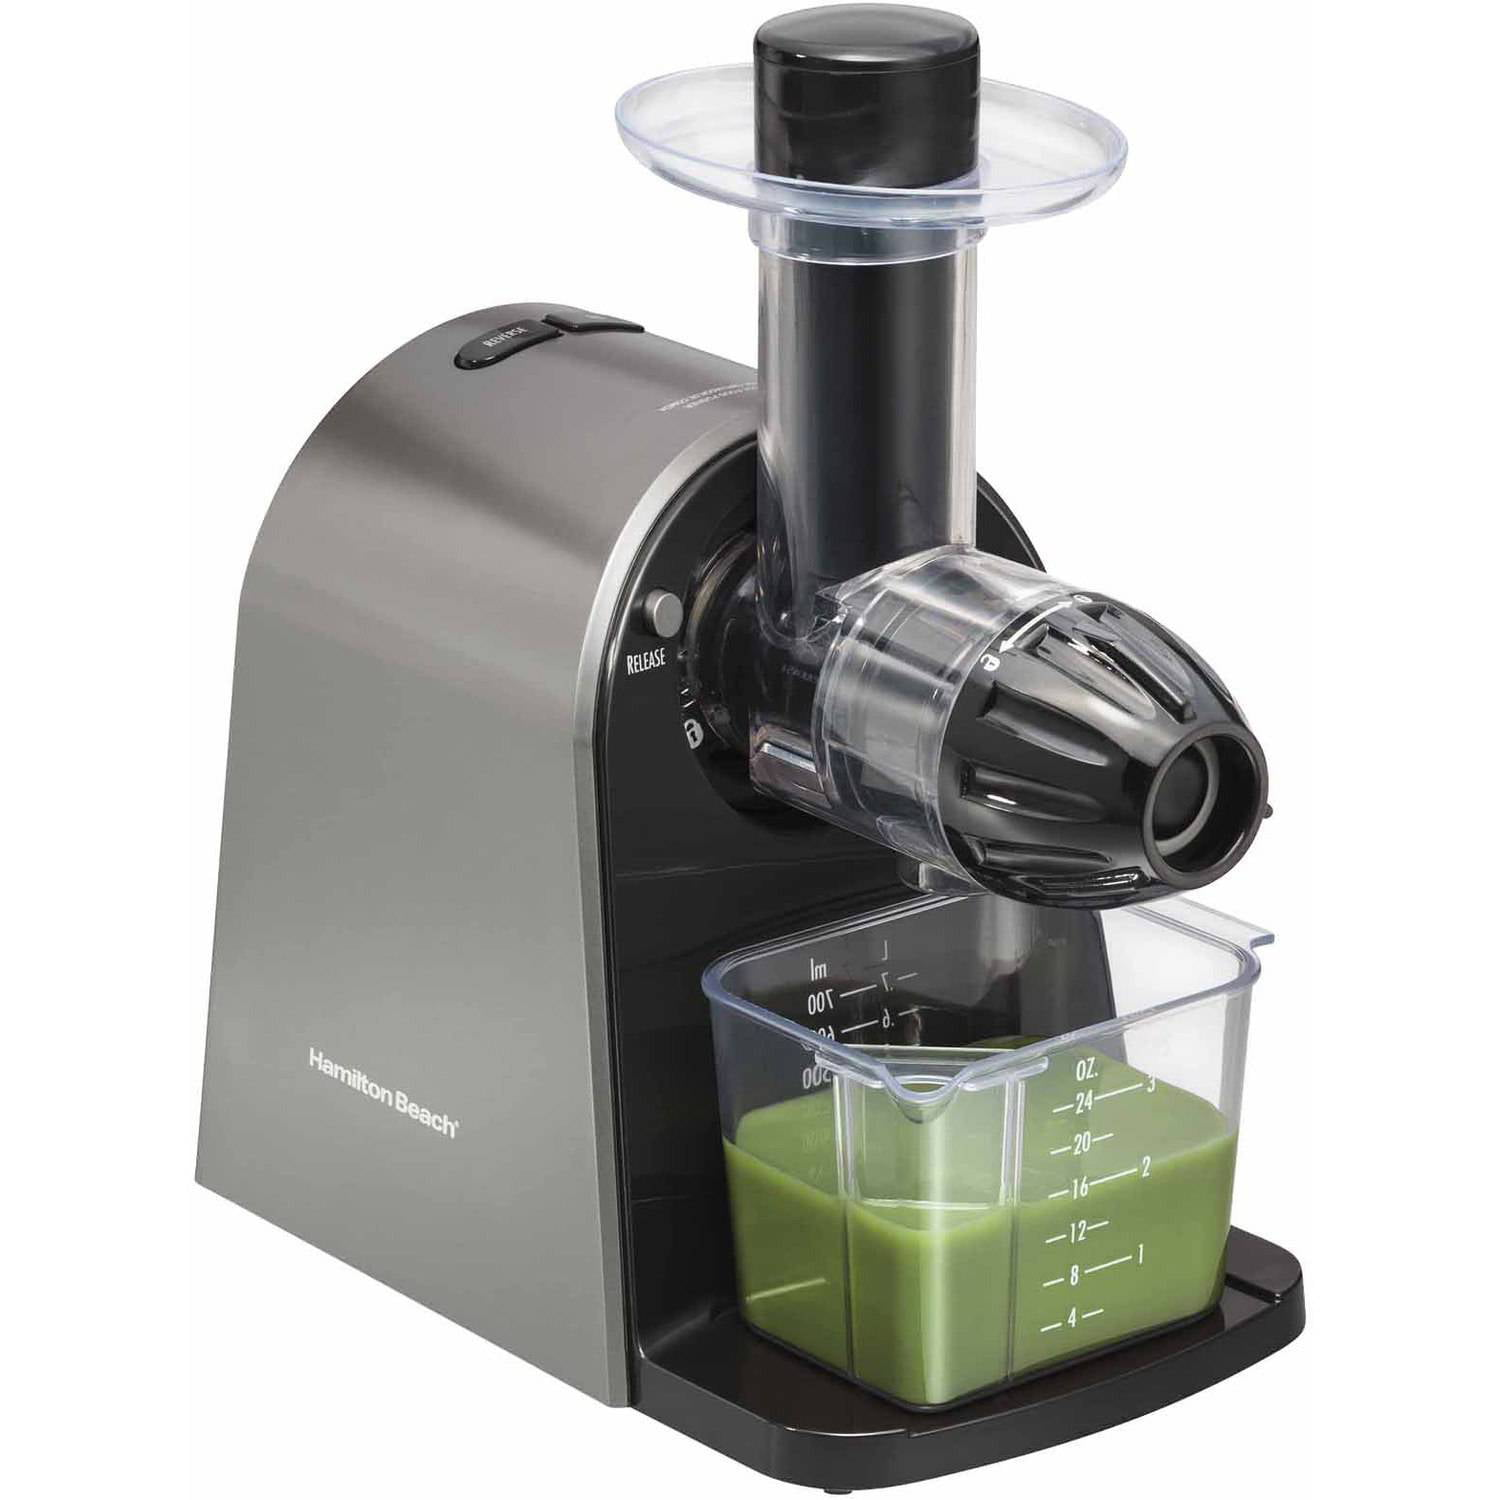 Slow Juicer : Cold Press Juicer Machine - Masticating Juicer Slow Juice ...